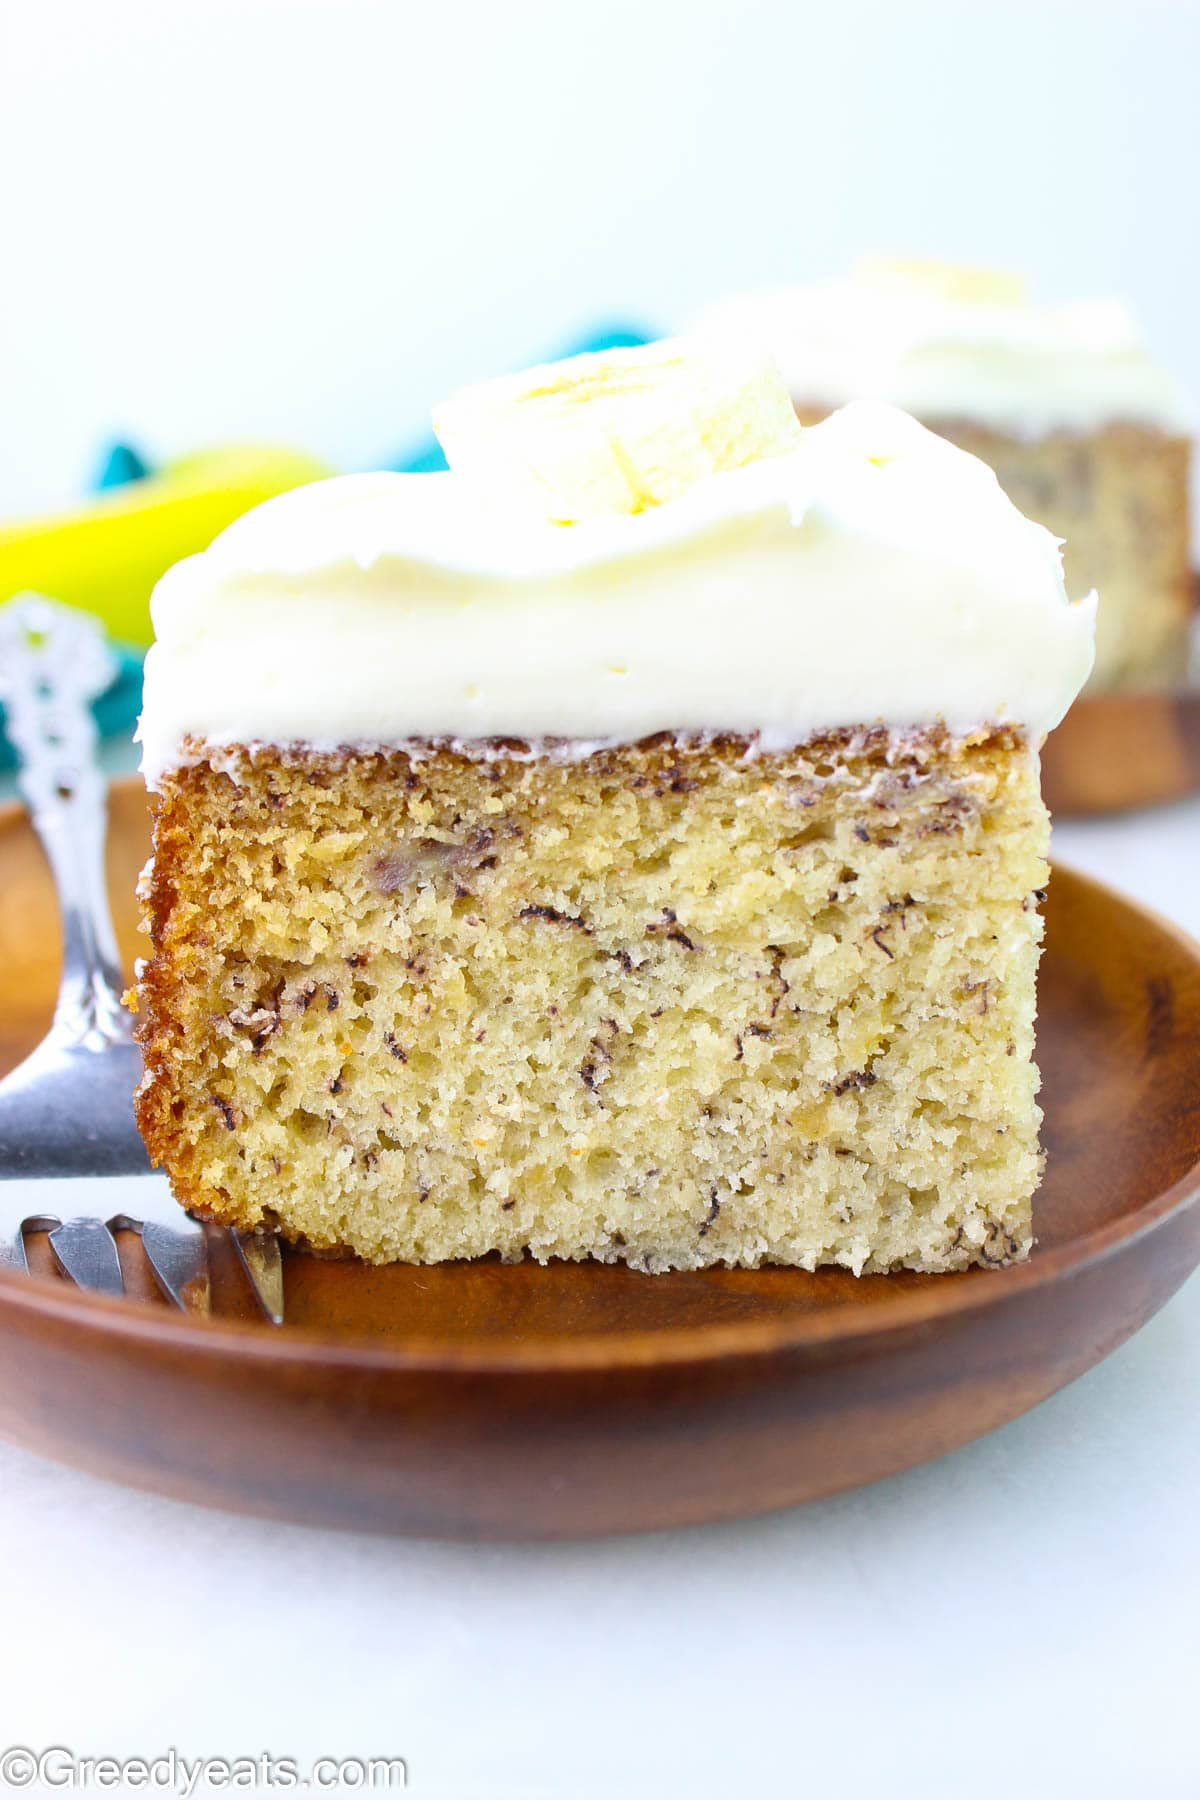 Fluffy, moist, soft and easy Banana Cake recipe topped with thick cream cheese frosting.